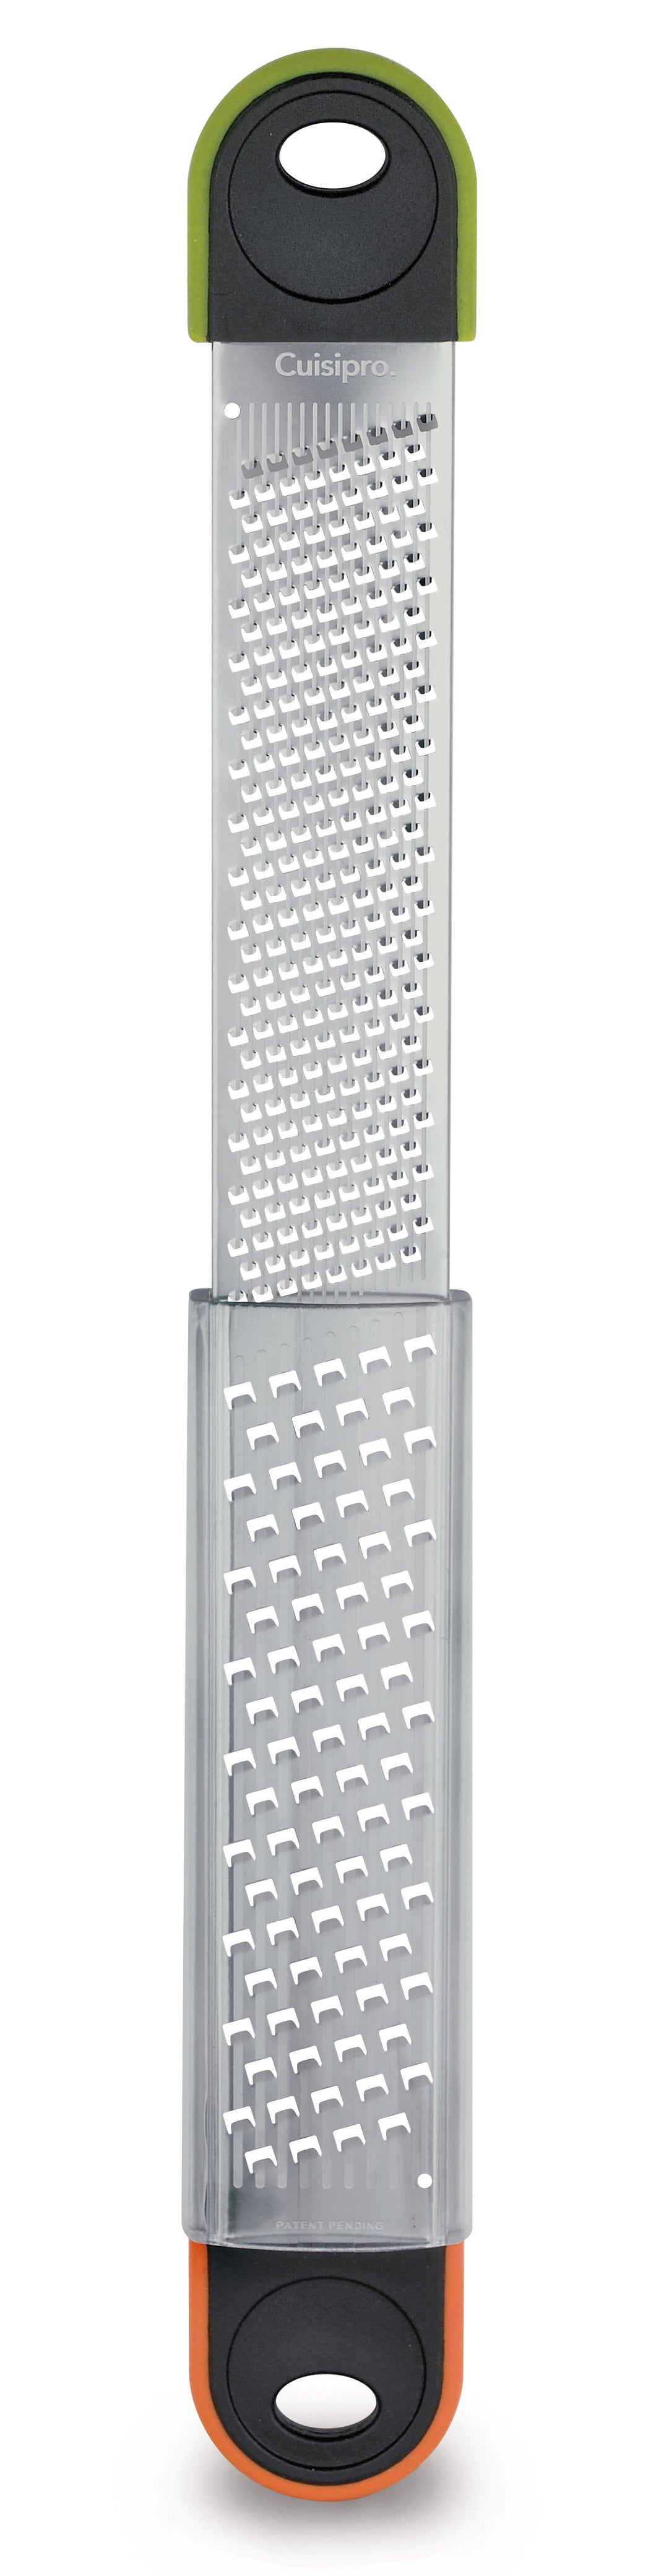 Cuisipro Stainless Steel Dual Grater